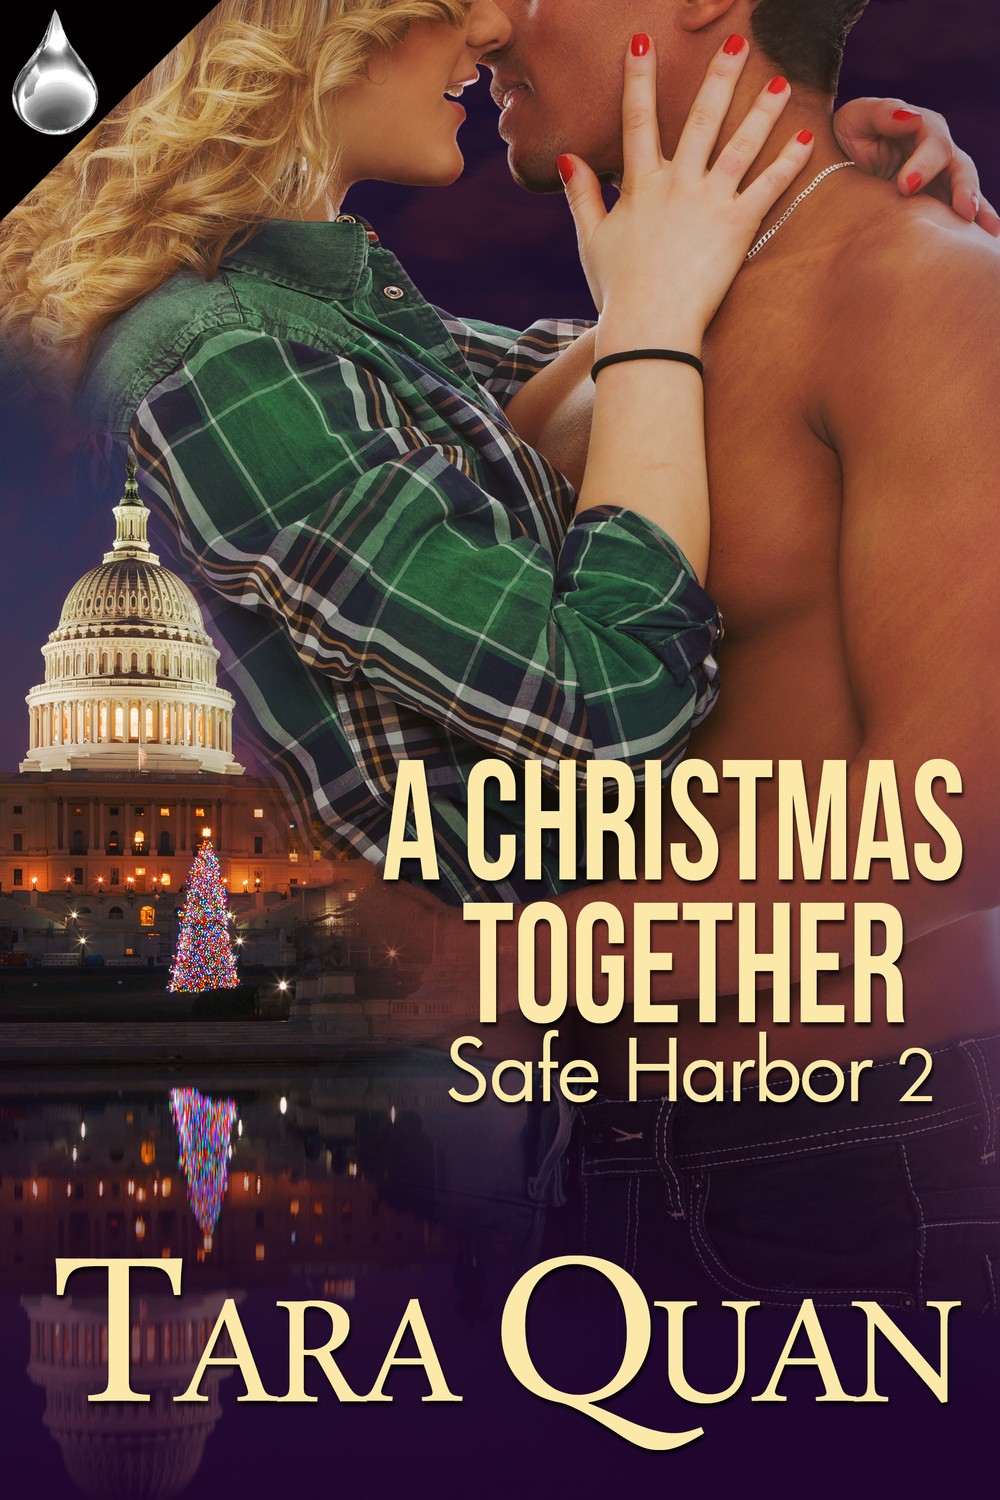 A Christmas Together by Tara Quan